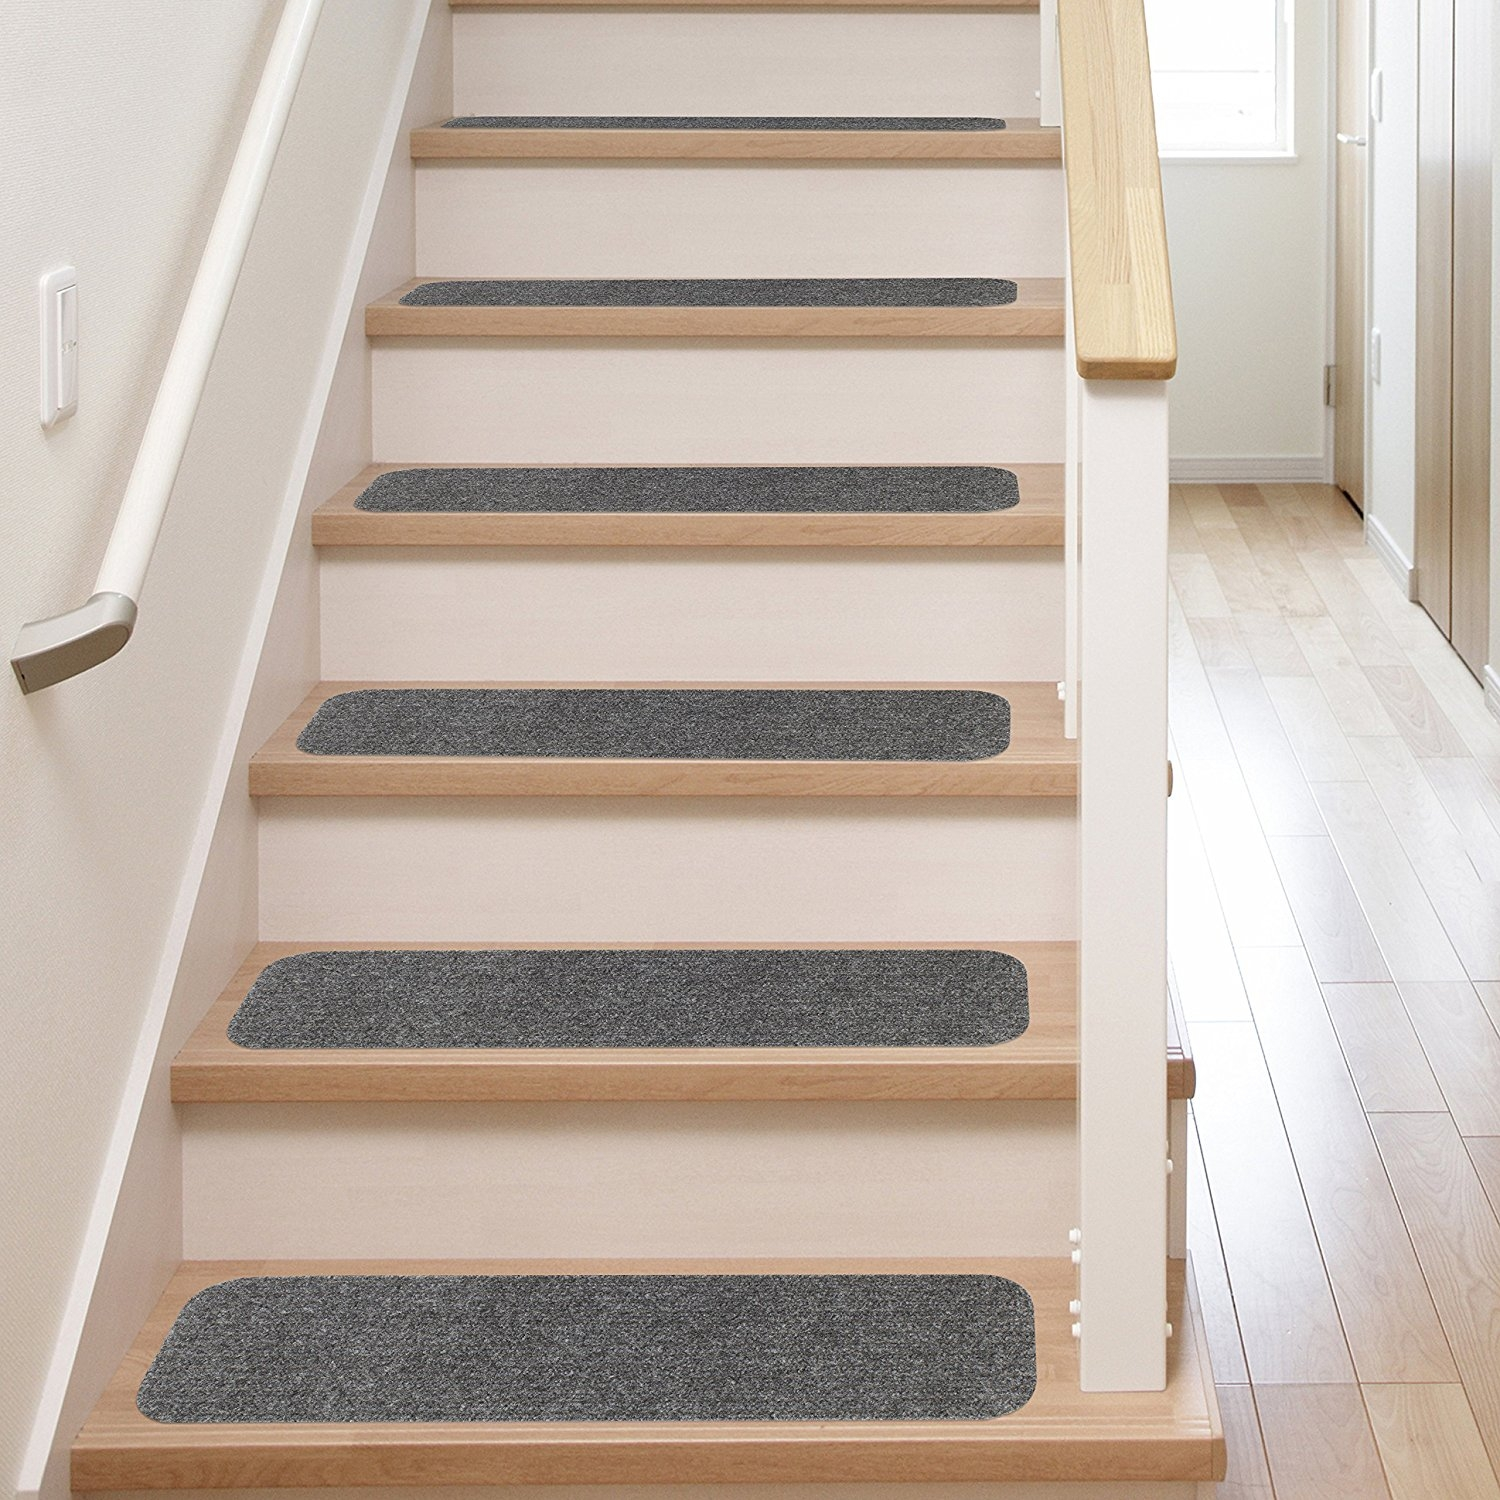 13 Stair Treads Non Slip Carpet Pads Easy Tape Installation Intended For Carpet Stair Pads (#1 of 20)